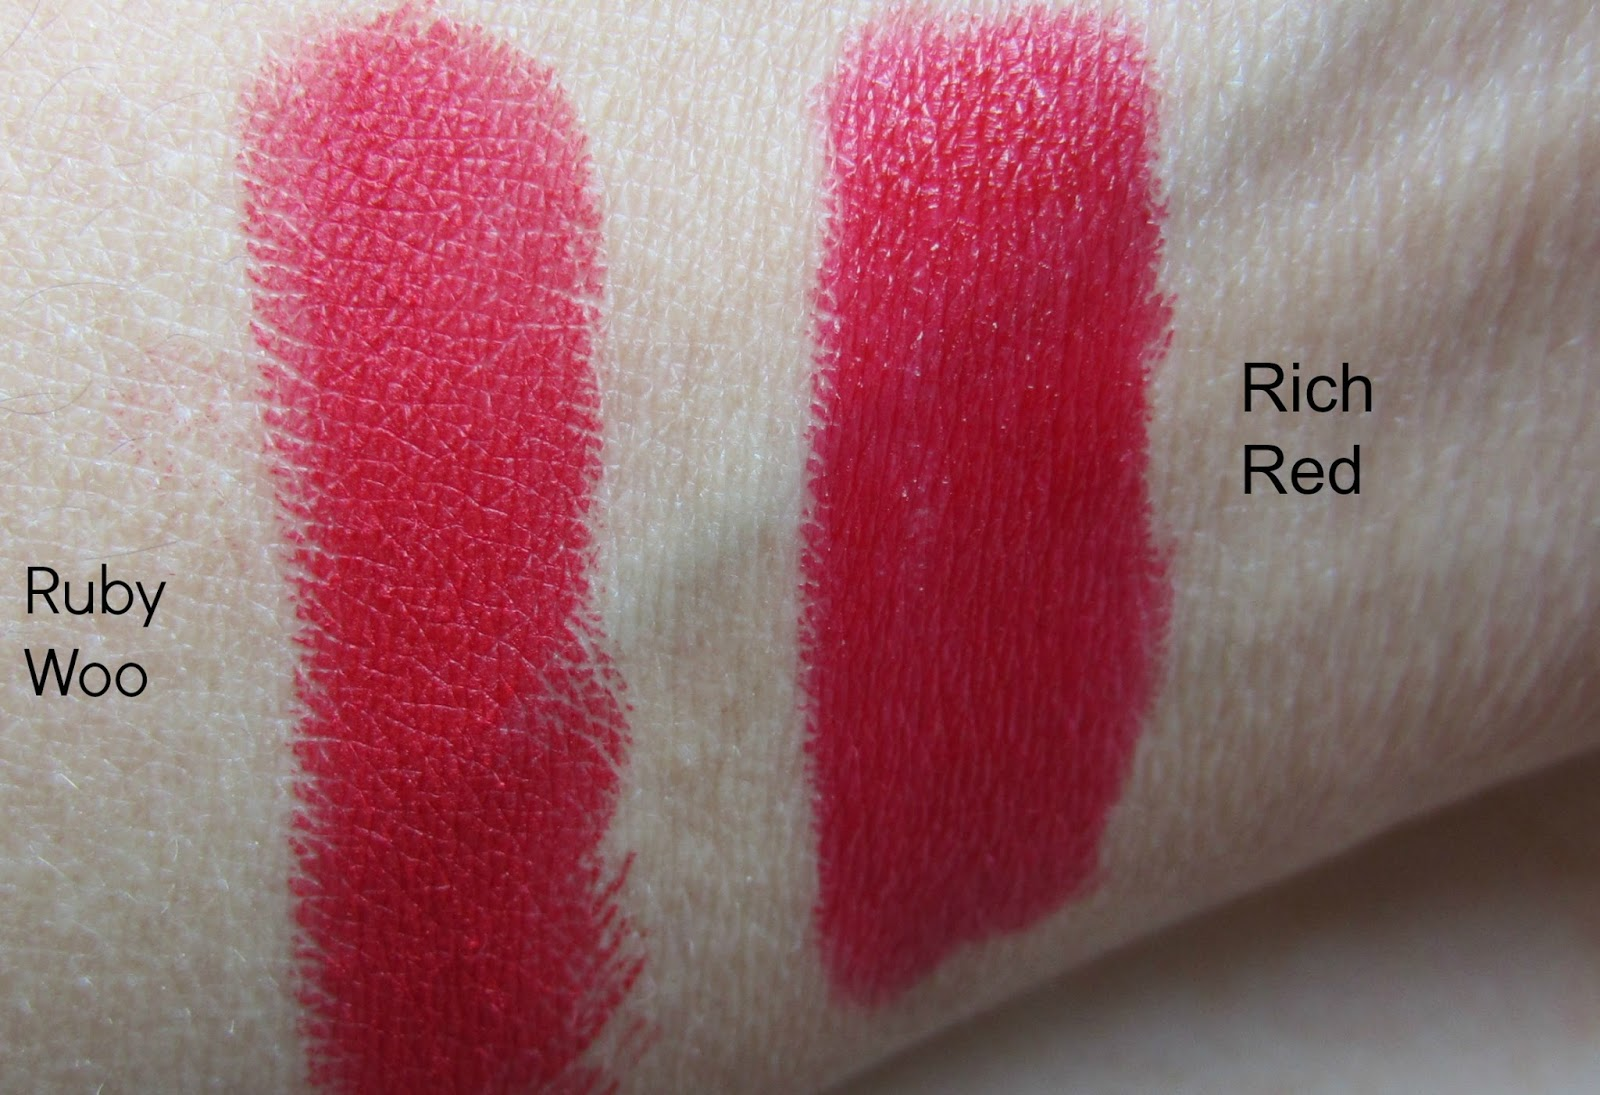 mac ruby woo e.l.f matte lip color rich red